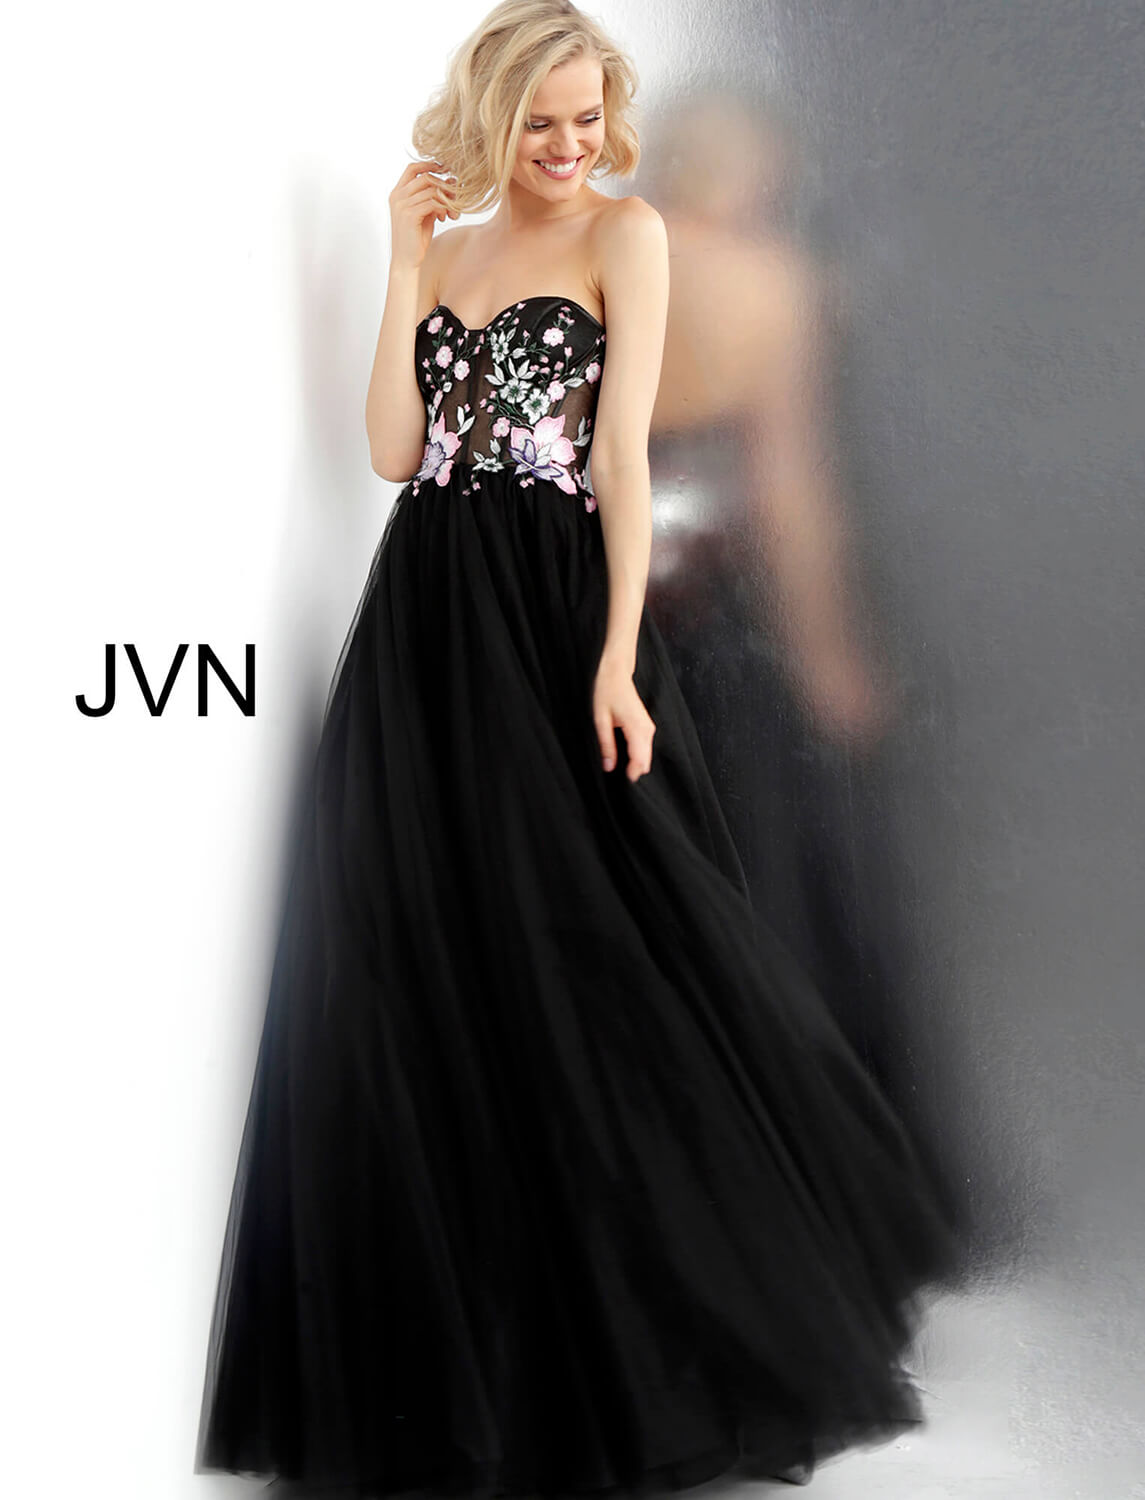 70d39c802f09 Black multi long floral embroidered sheer bodice with boning dress.